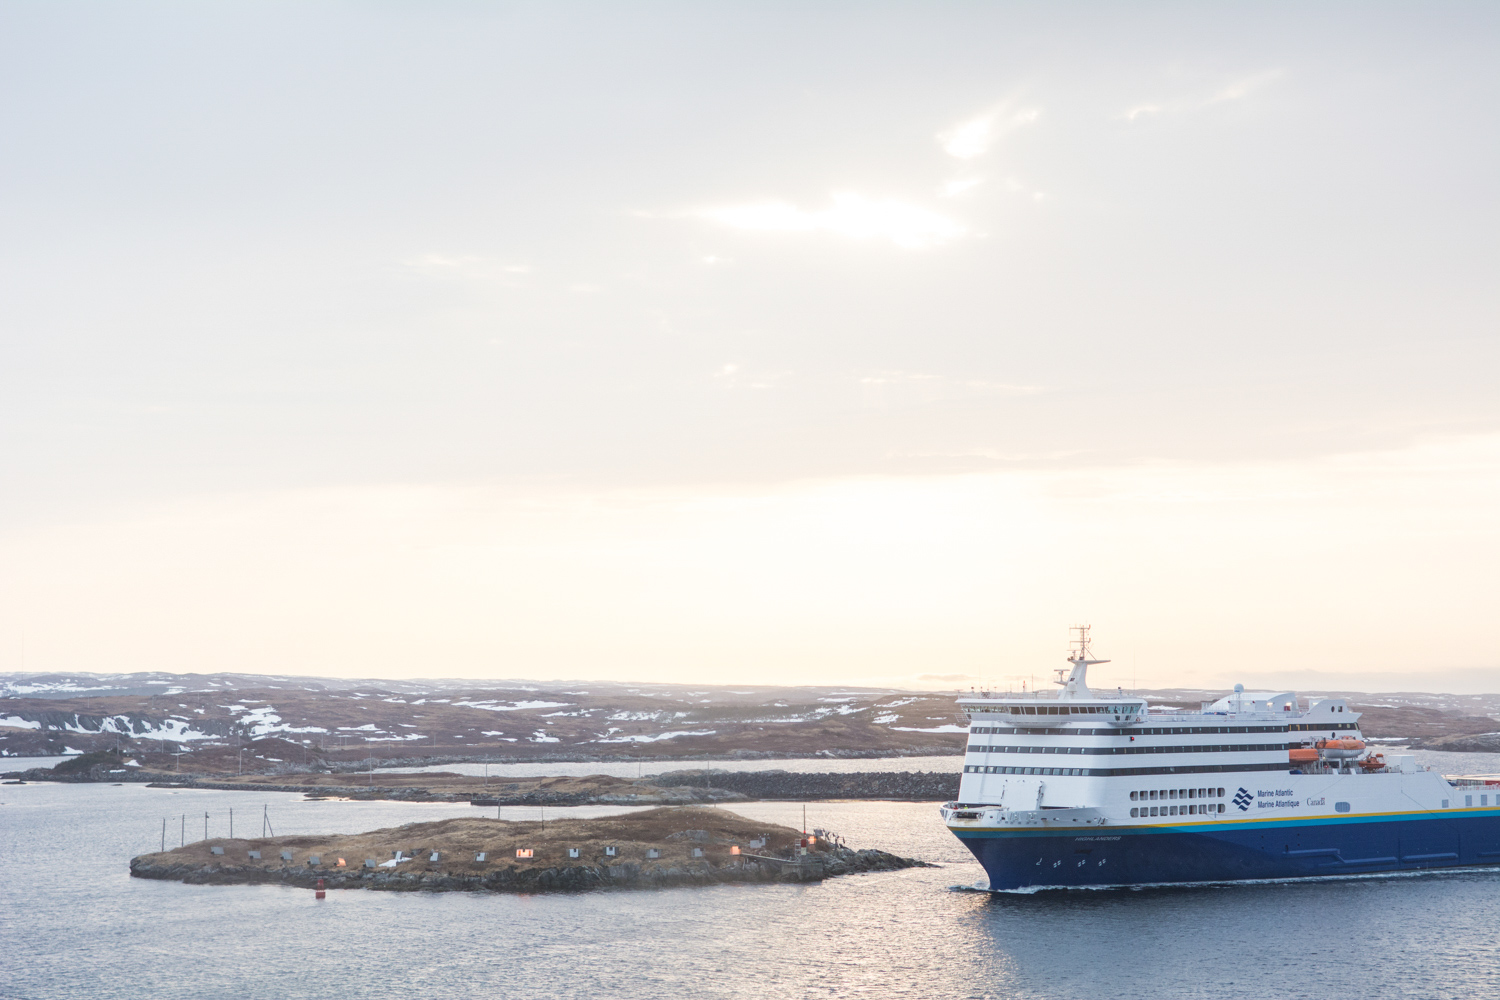 may06 2015-NATIONAL-Marine Atlantic-Port aux Basques NF-low res jpg selects-1177-photo by Aaron McKenzie Fraser-www.amfraser.com-.jpg